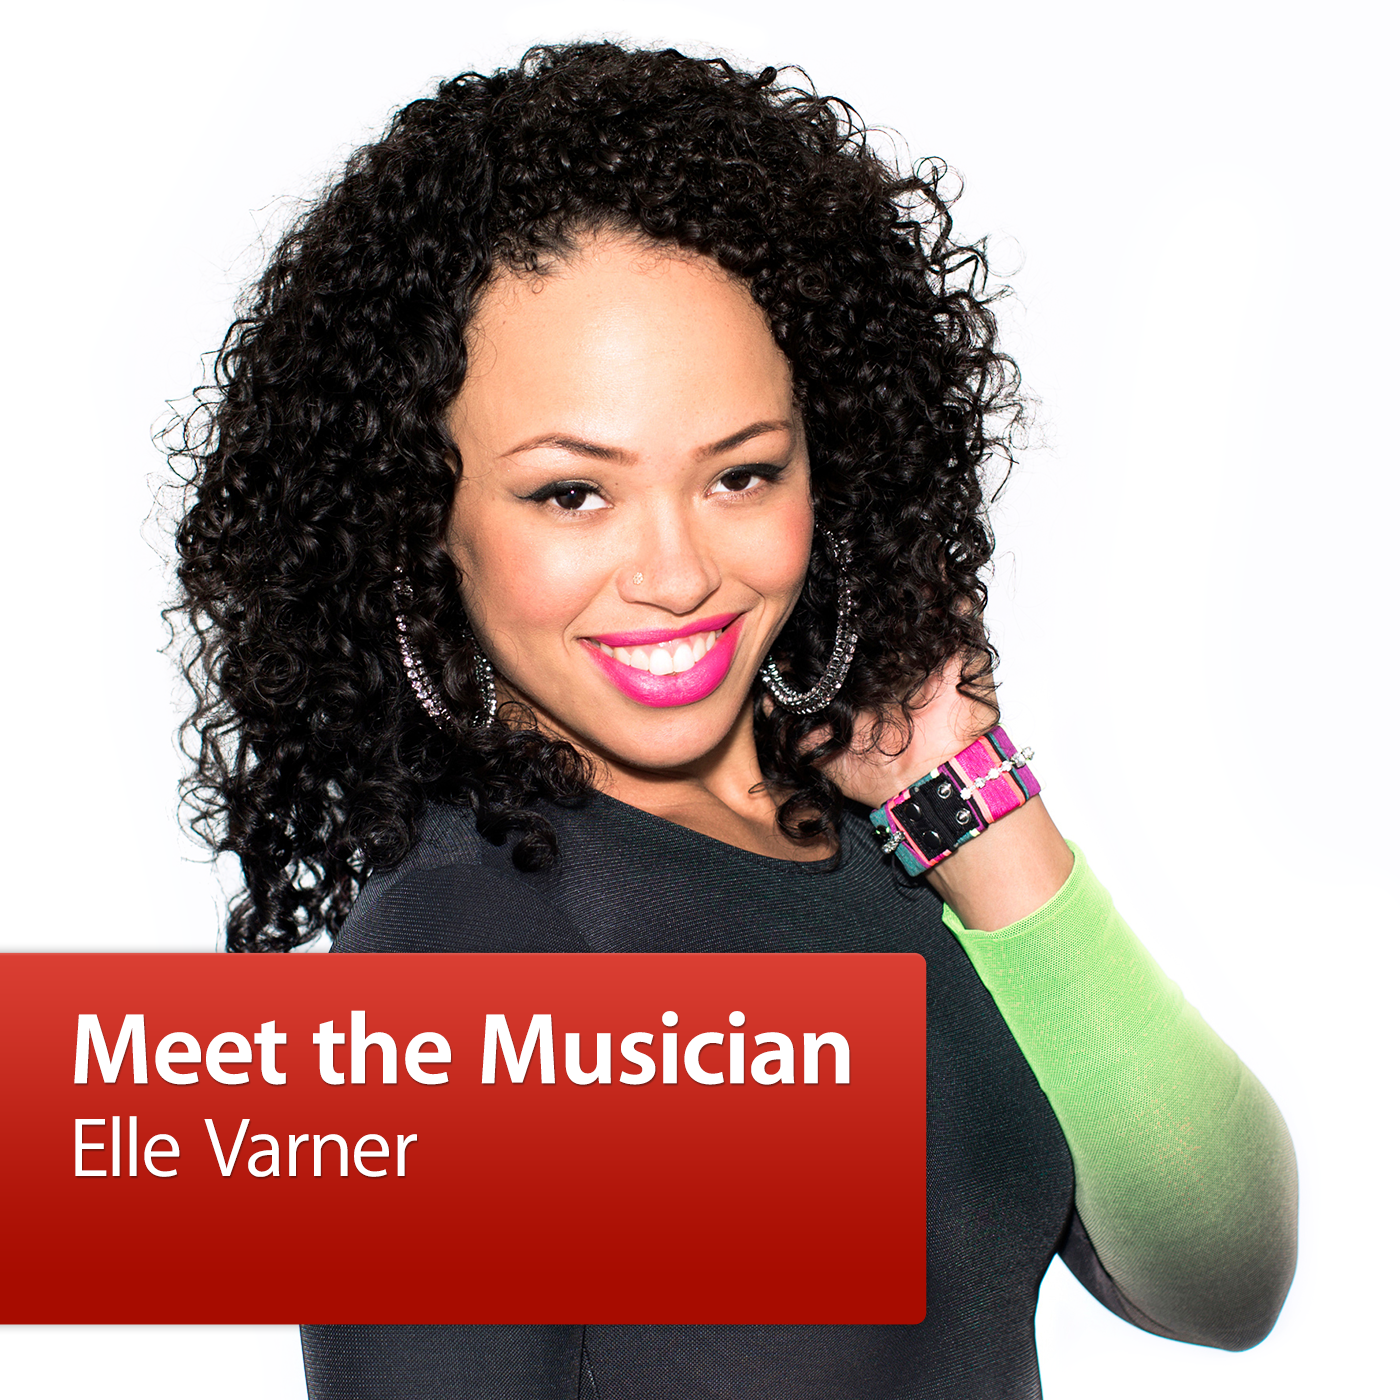 Elle Varner: Meet the Musician